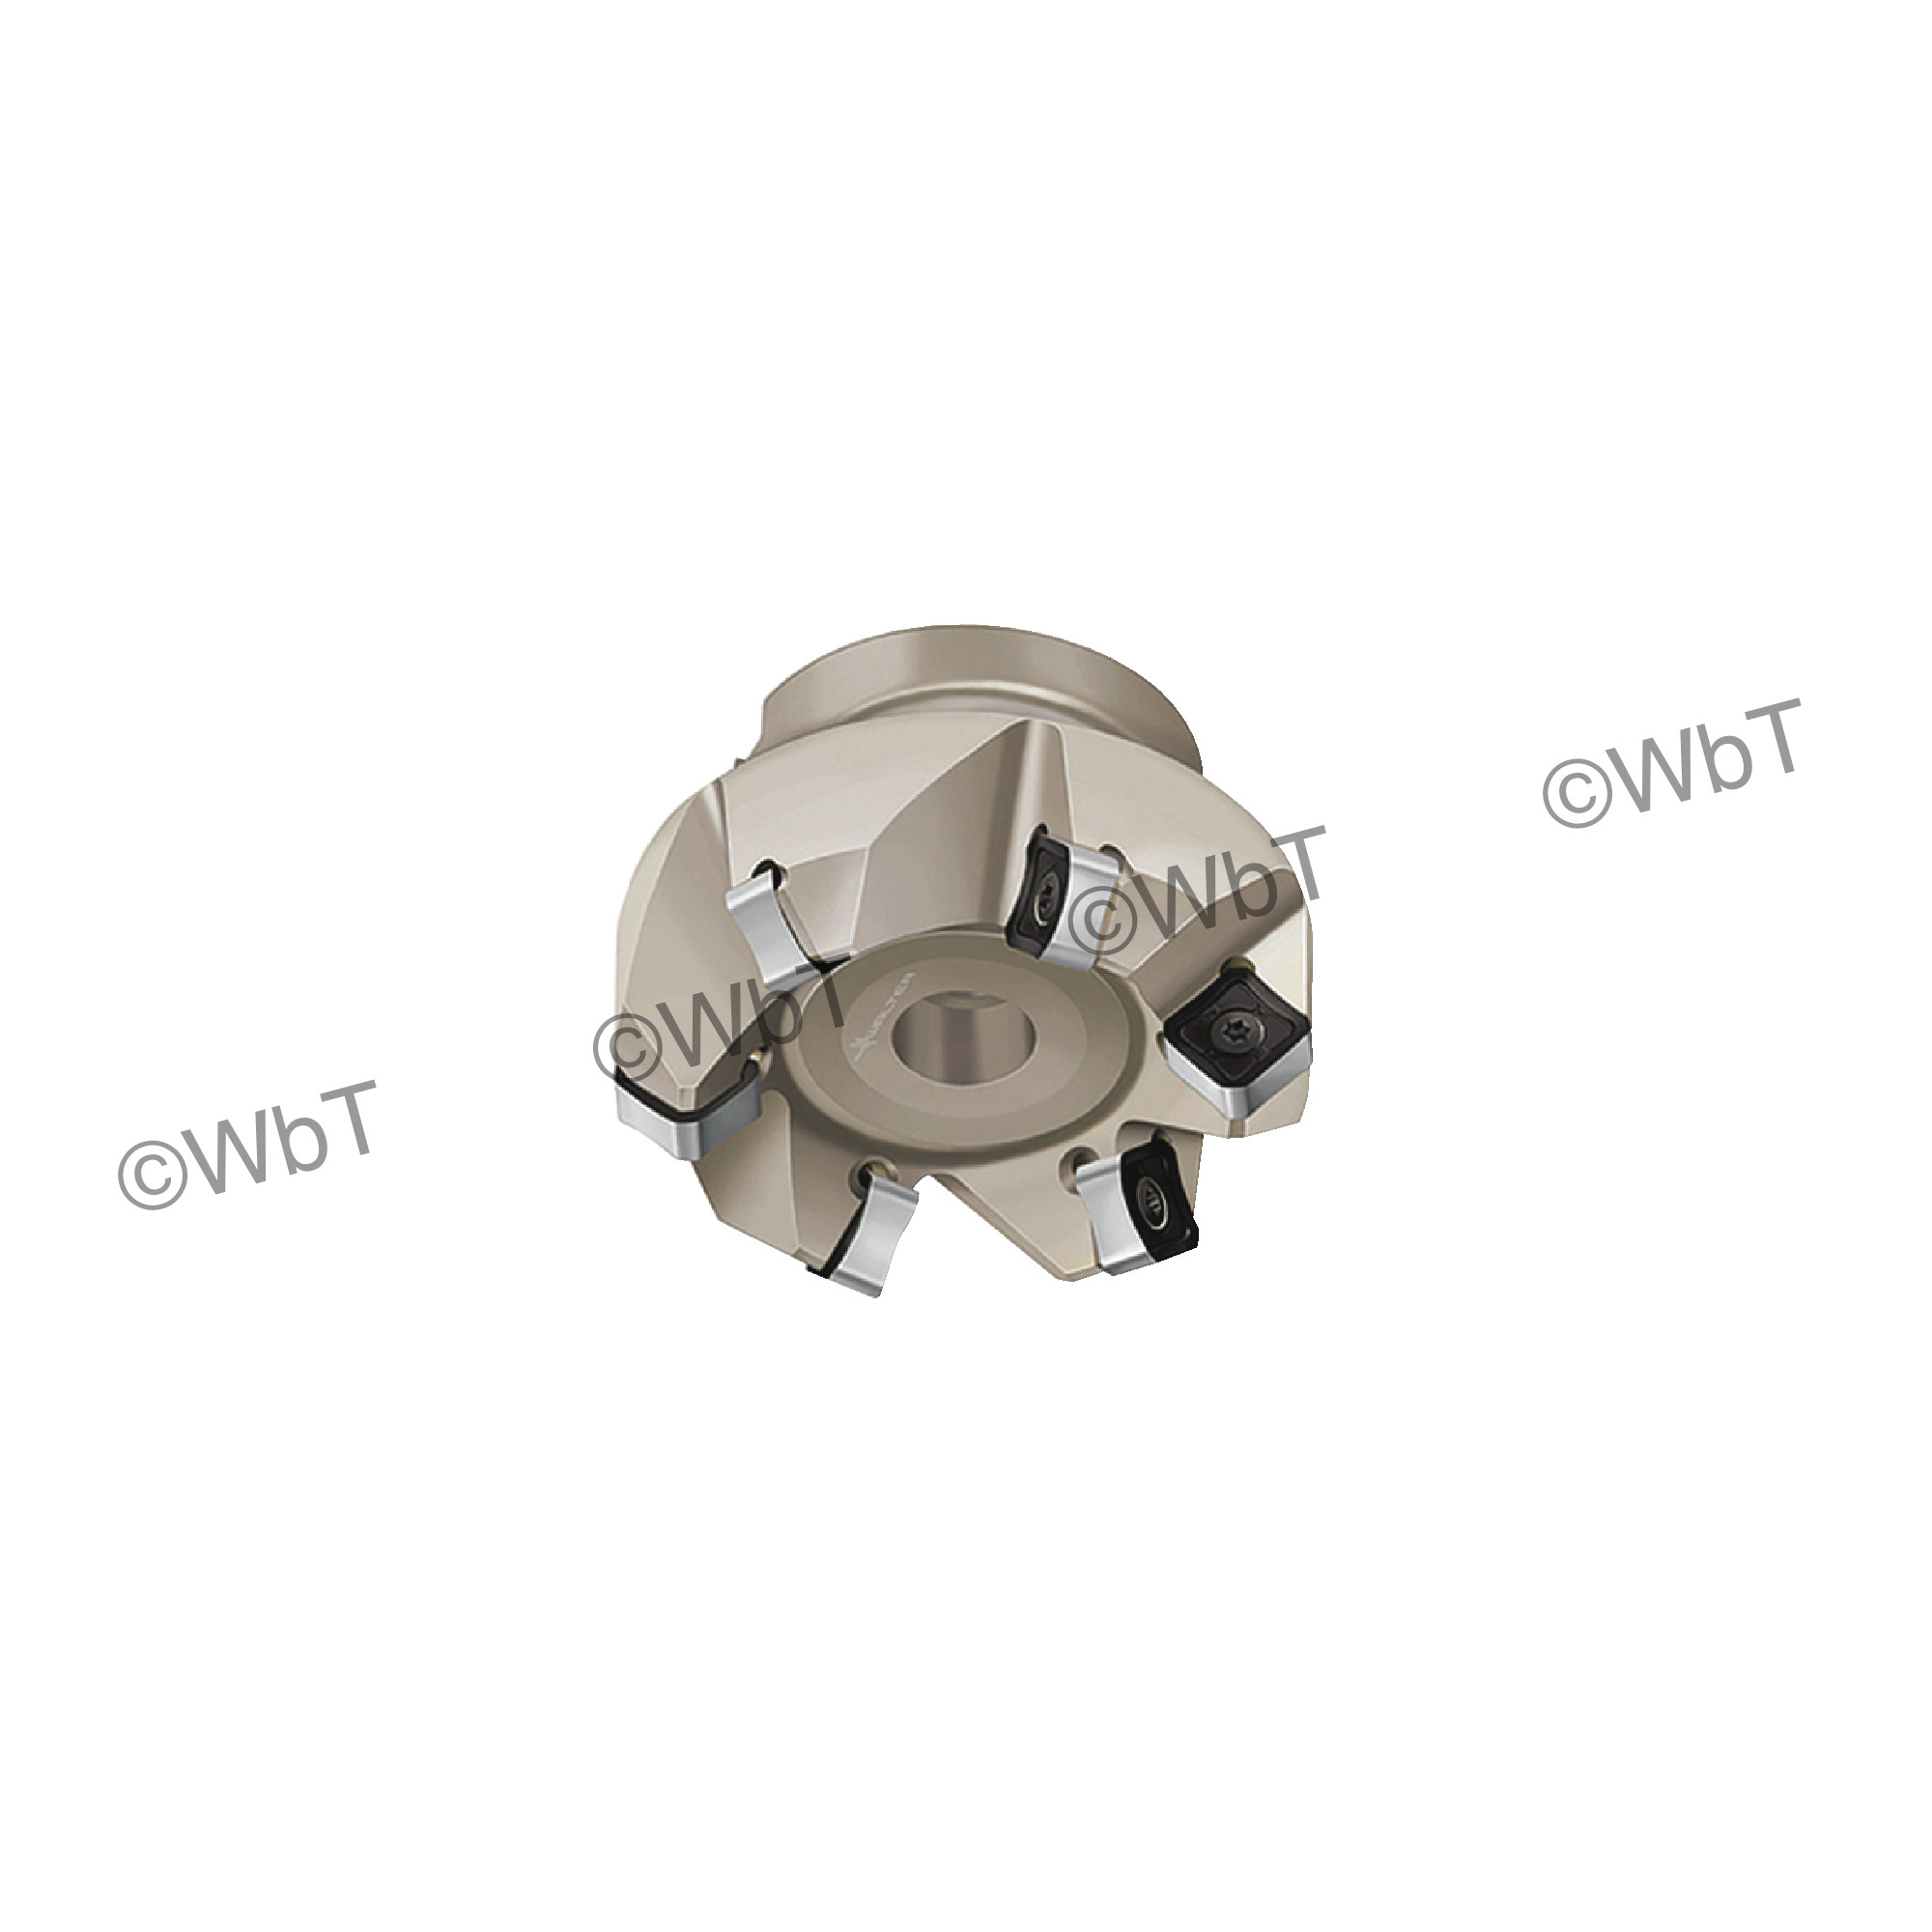 """WALTER VALENITE - F4033.UB.051.Z04.06 / 2.000"""" 45° Face Mill for SNMX1205 Inserts / Right Hand"""